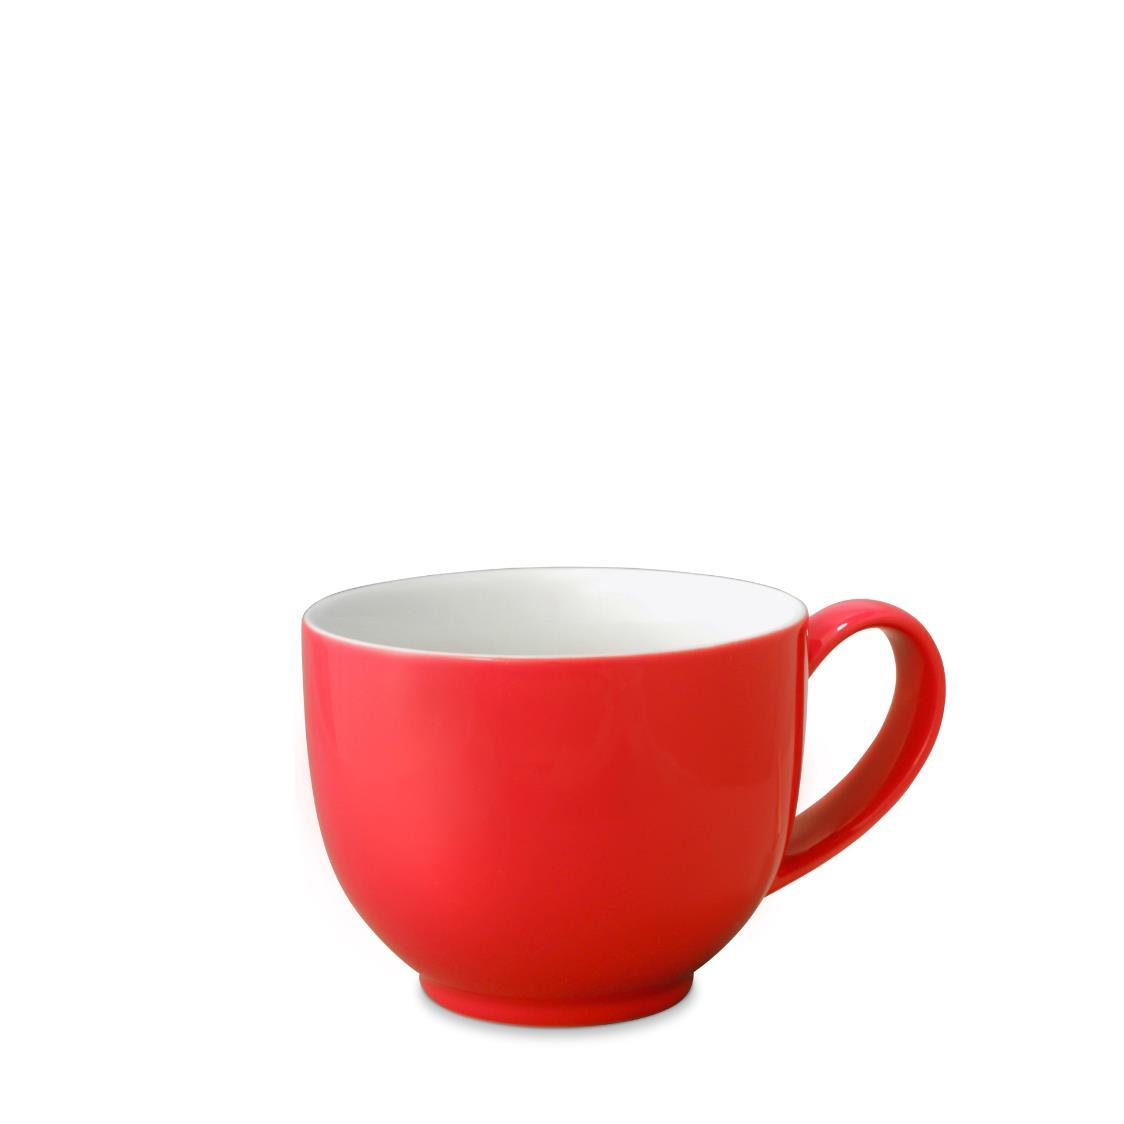 Q Tea Cup with Handle 295ml FL521-RED